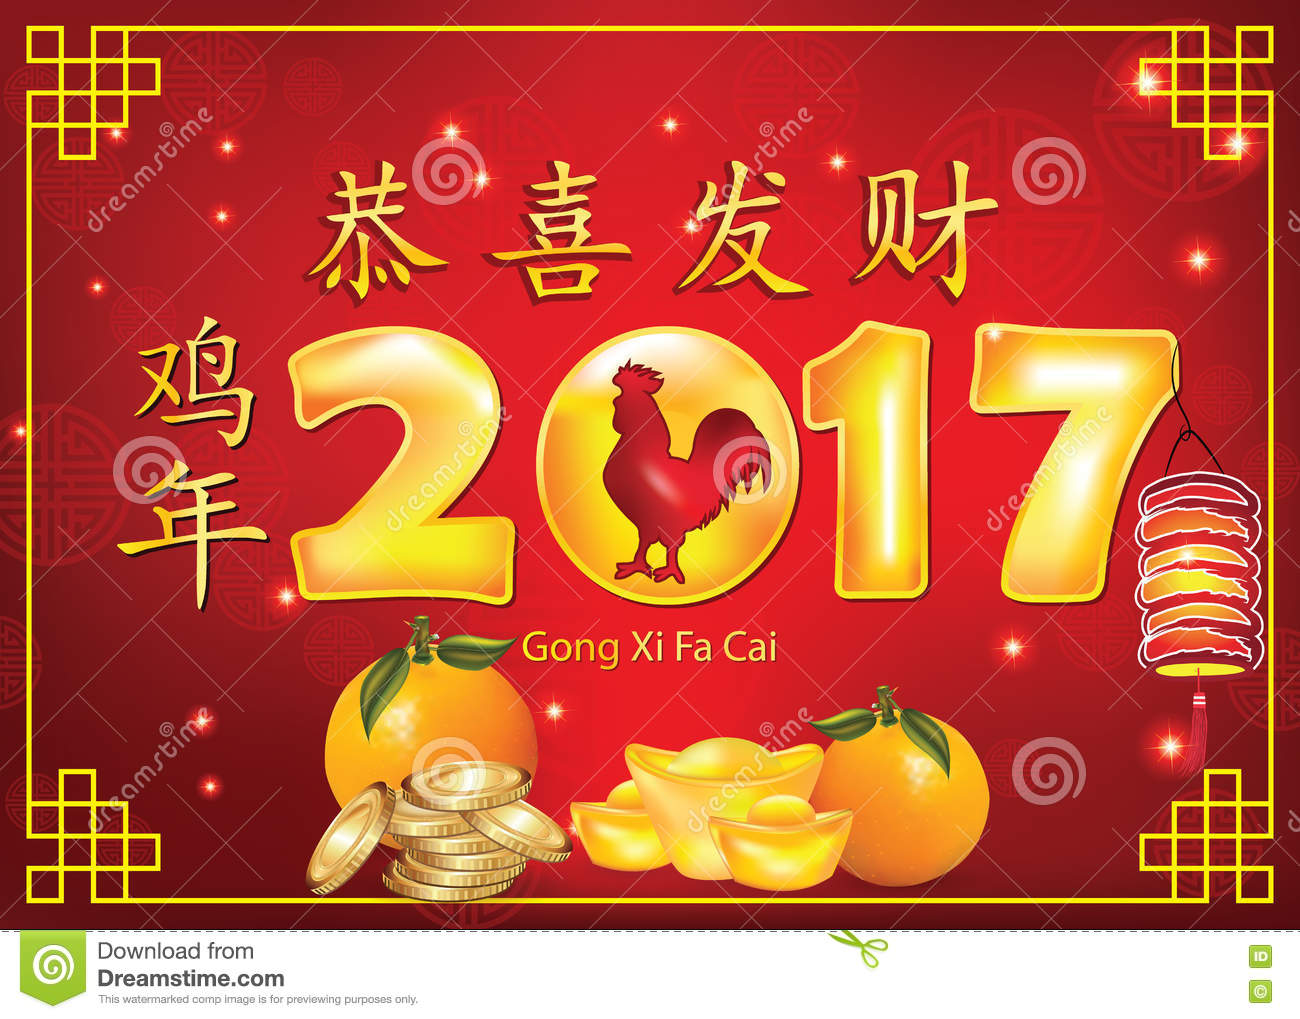 New year 2017 greeting pictures year of rooster happy chinese new year - Chinese New Year Of The Rooster 2017 Greeting Card Stock Illustration